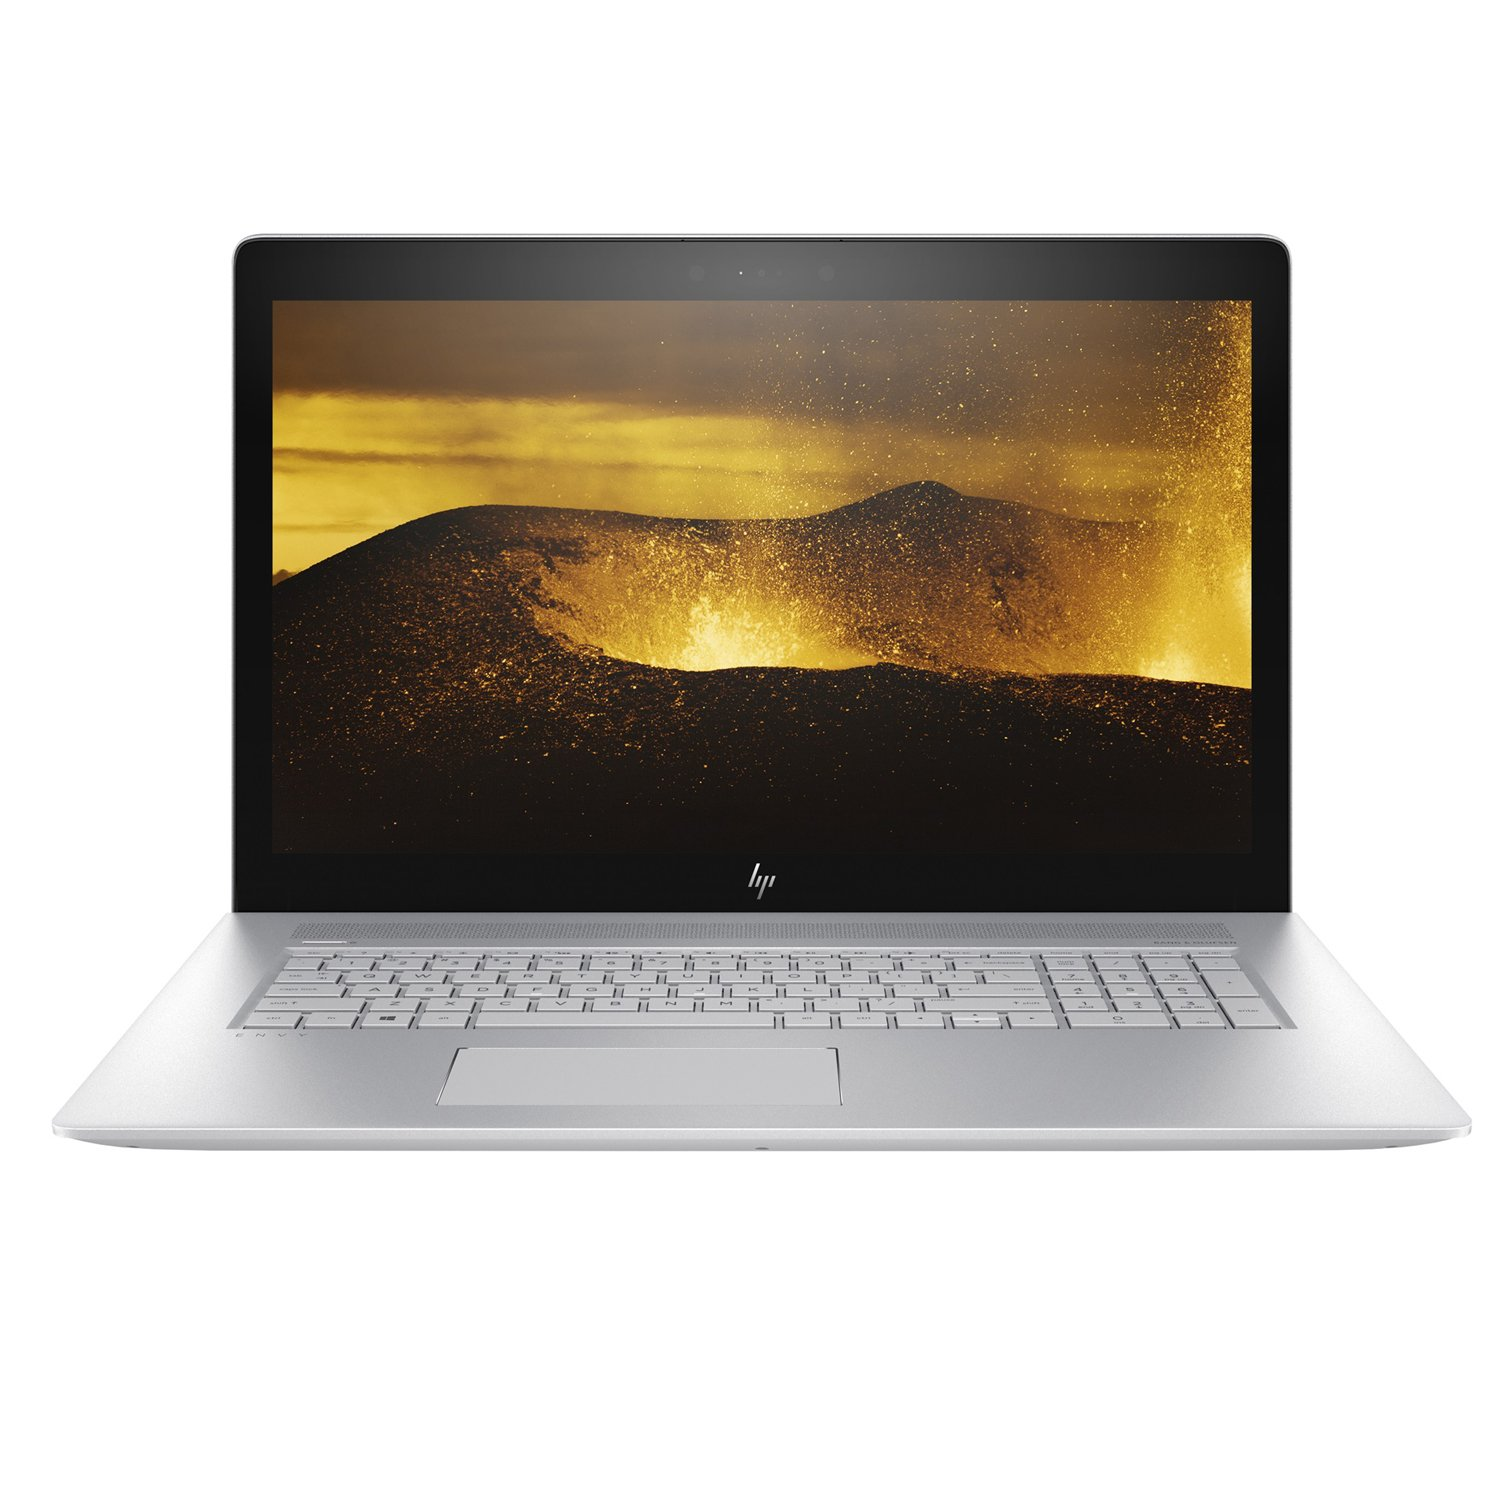 HP Envy 17T Touch Intel Core i7-8550U Quad Core, 512GB SSD, 16GB RAM, Win 10 Pro HP Installed, 17.3 FHD touch, Nvidia…